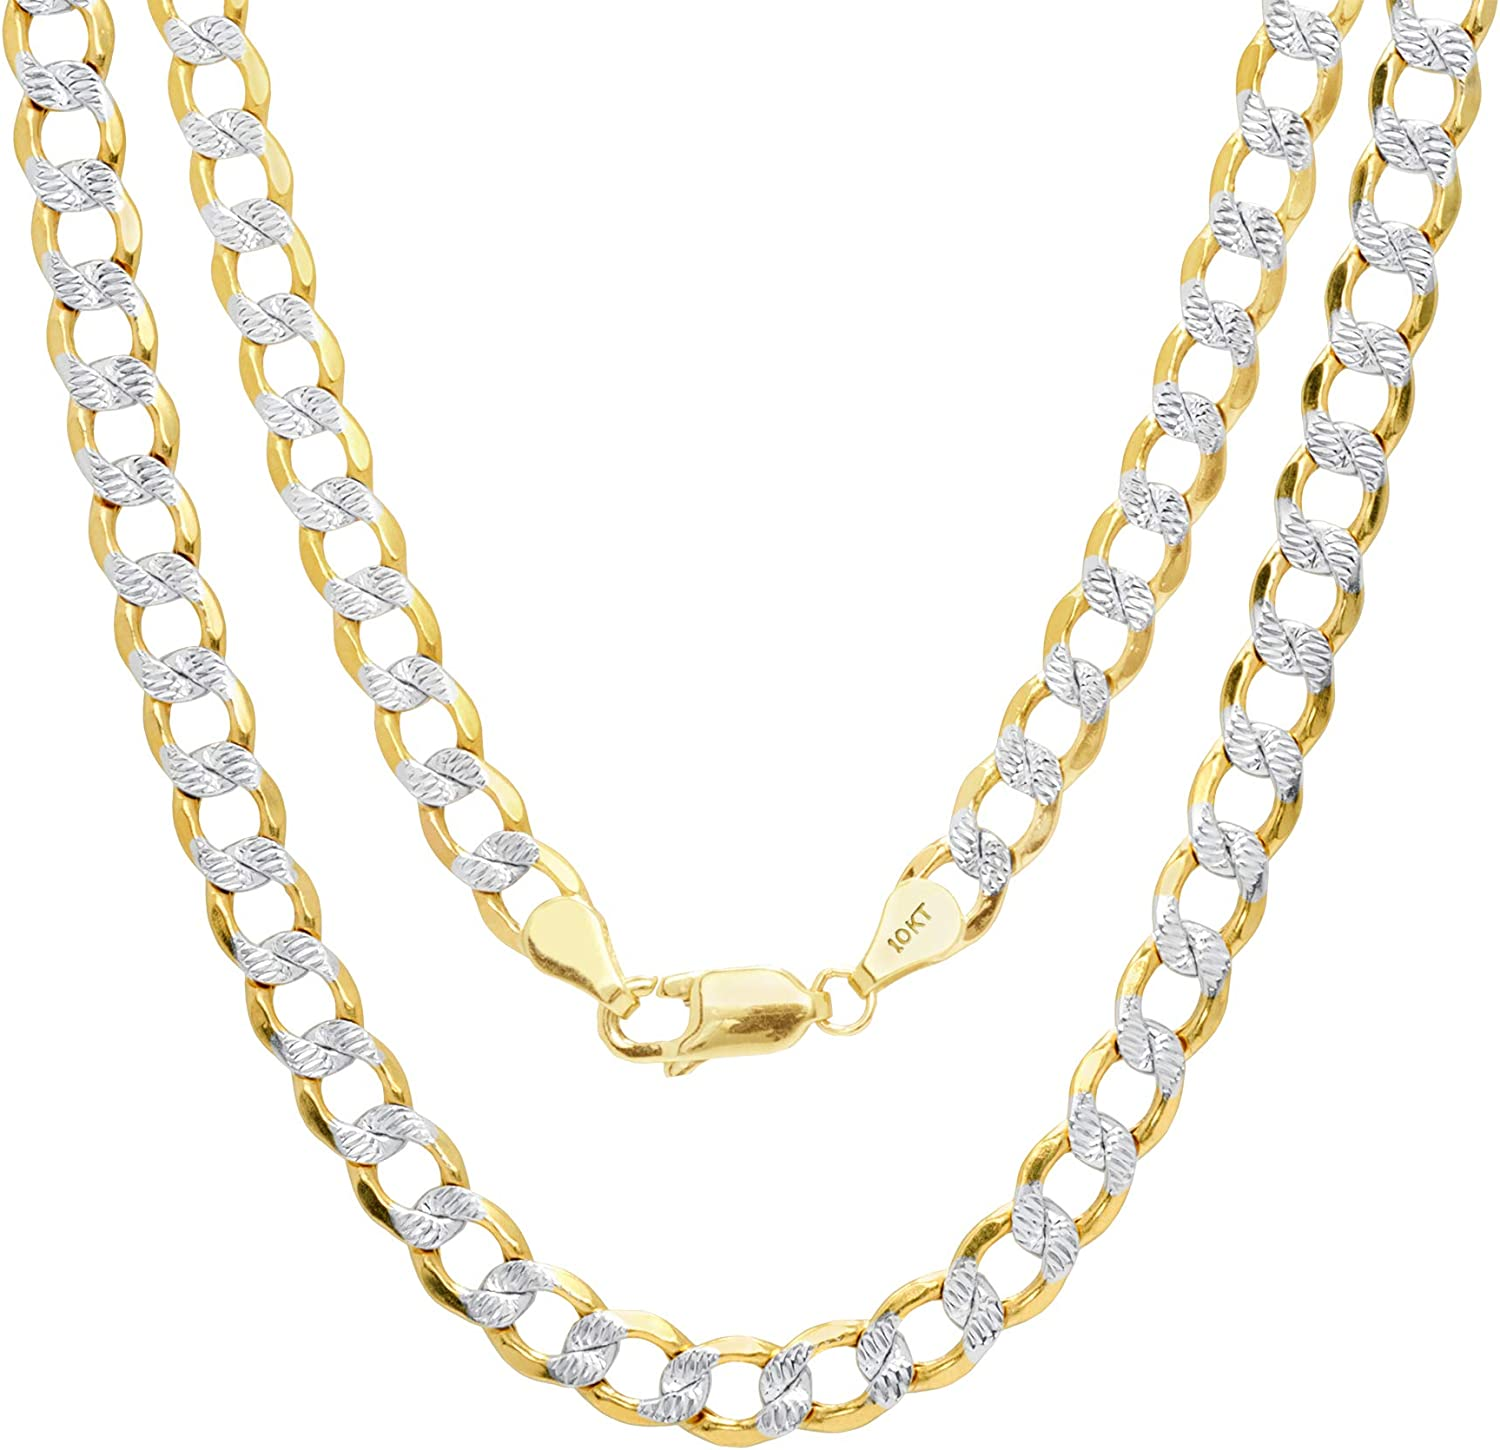 Nuragold 10k Yellow Gold 5.5mm Cuban Chain Curb Link Diamond Cut Pave Two Tone Pendant Necklace, Mens Womens Lobster Lock 18